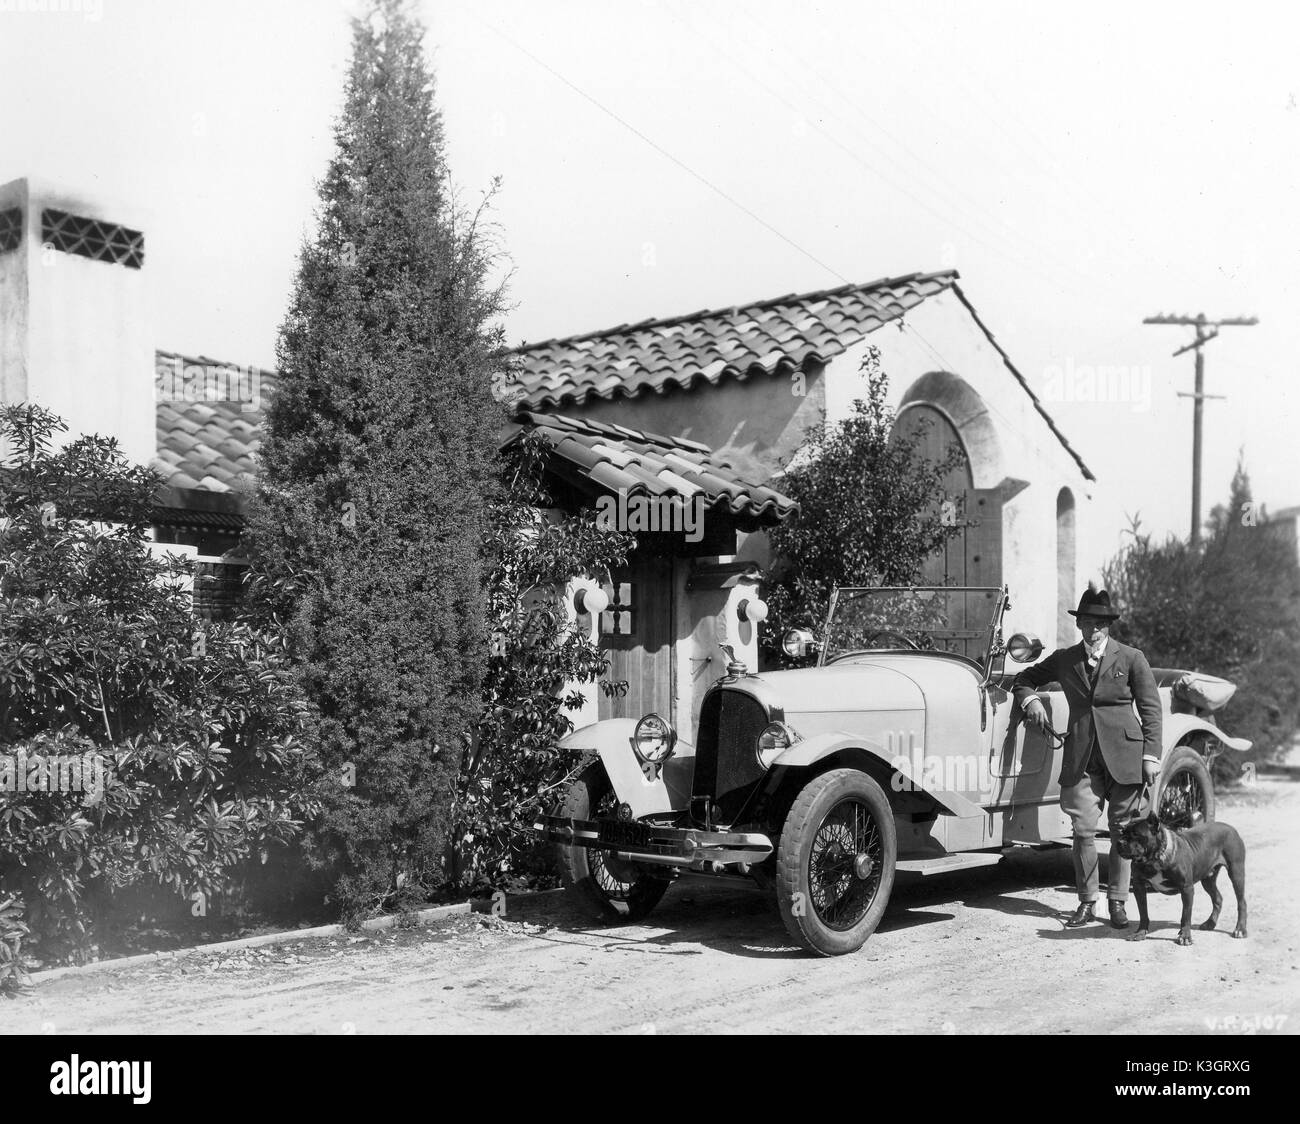 RUDOLPH VALENTINO WITH HIS VOISIN CAR Stock Photo: 157107288 - Alamy